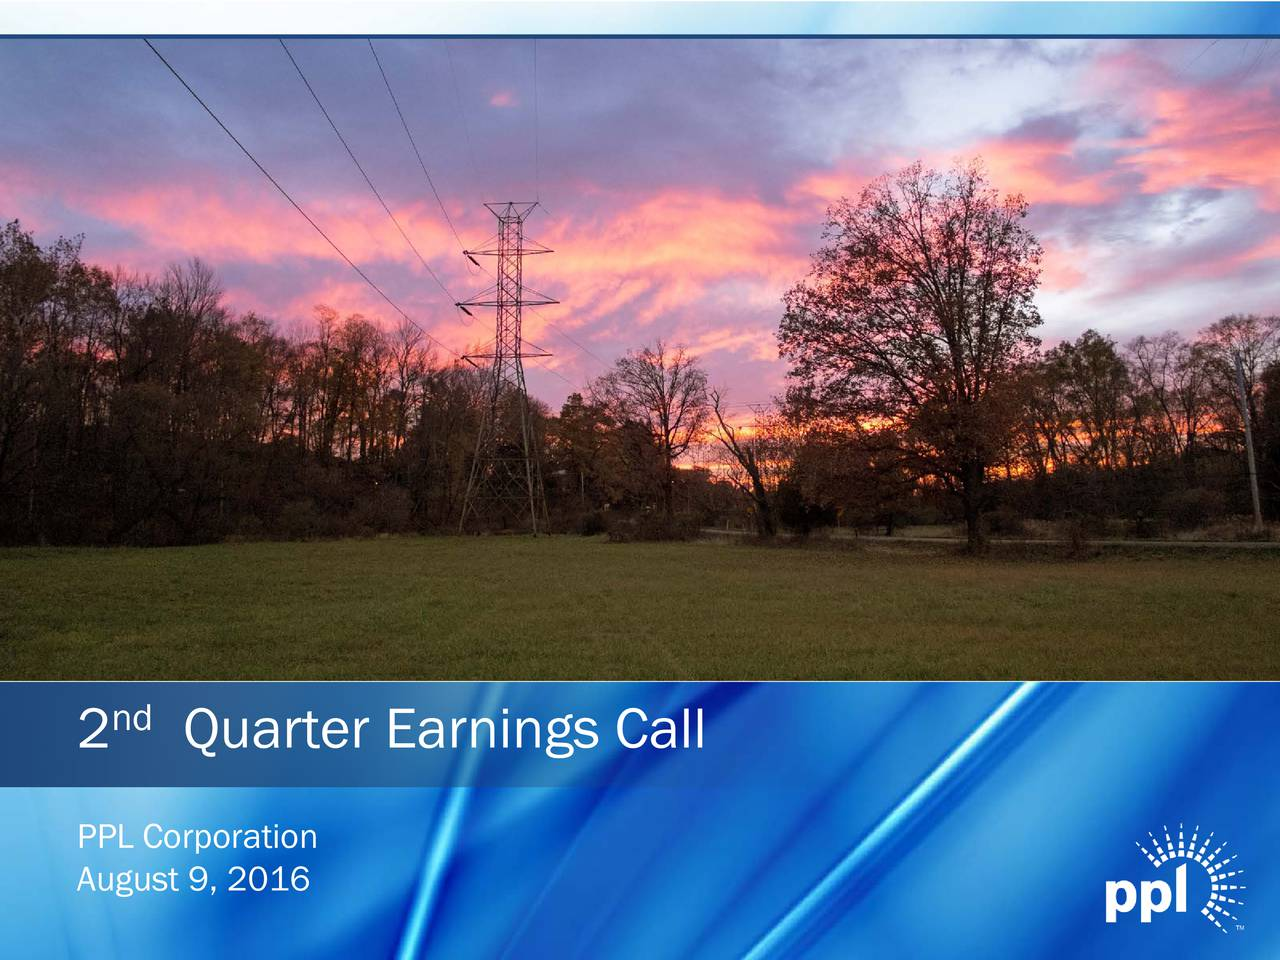 2 Quarter Earnings Call PPL Corporation August 9, 2016